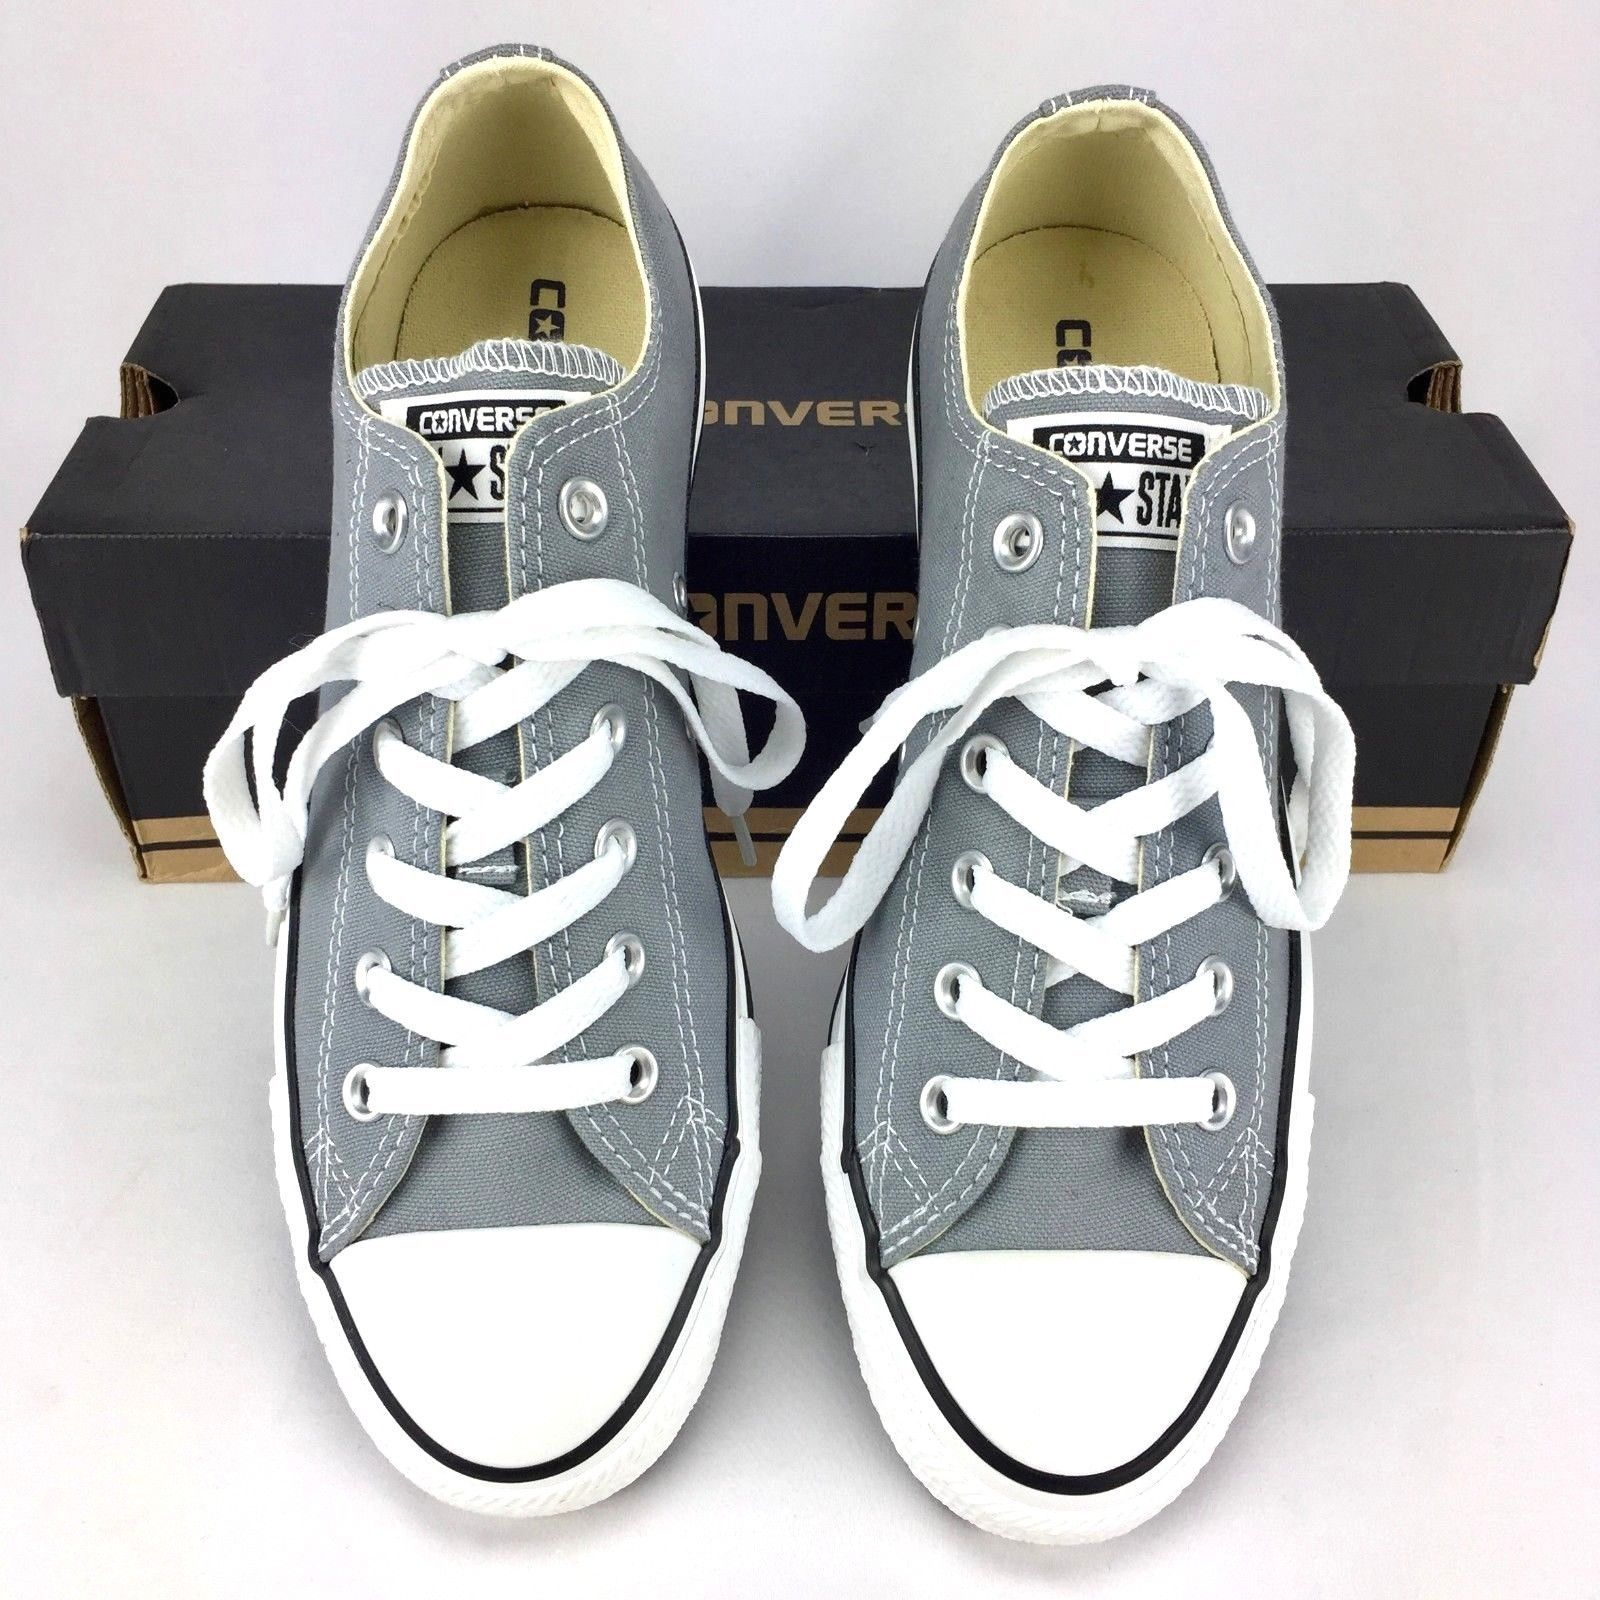 b8b3b73b0697 S l1600. S l1600. Previous. Converse All Star Unisex Low Top Sneakers Size  Mens 7   Womens 9 Dolphin Grey